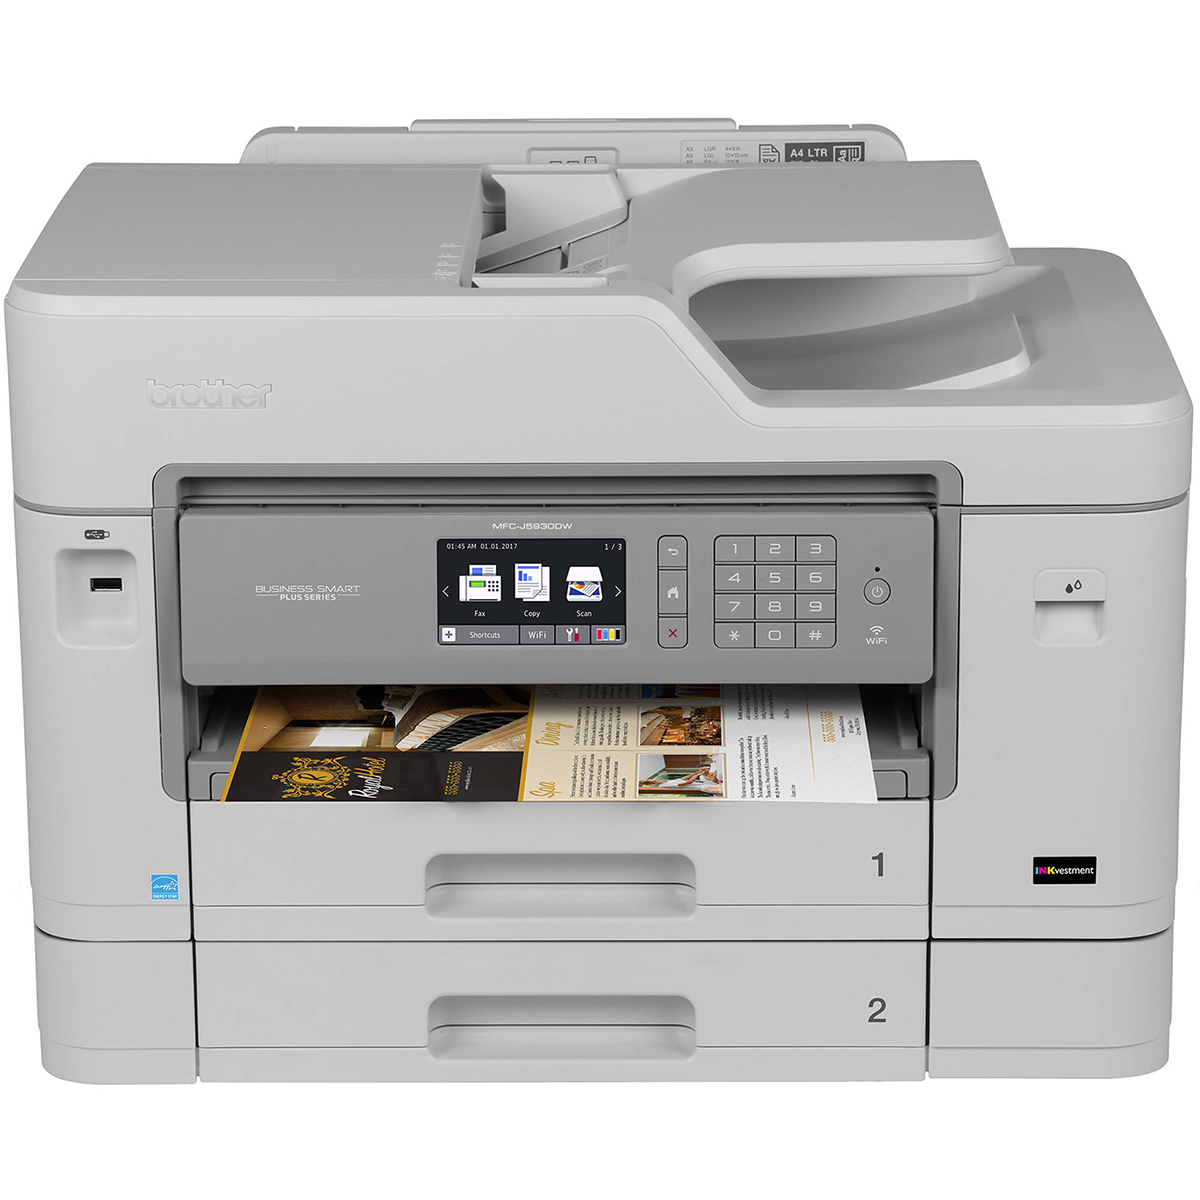 Brother MFC-J5930DW A Grade - Refurbished Machine